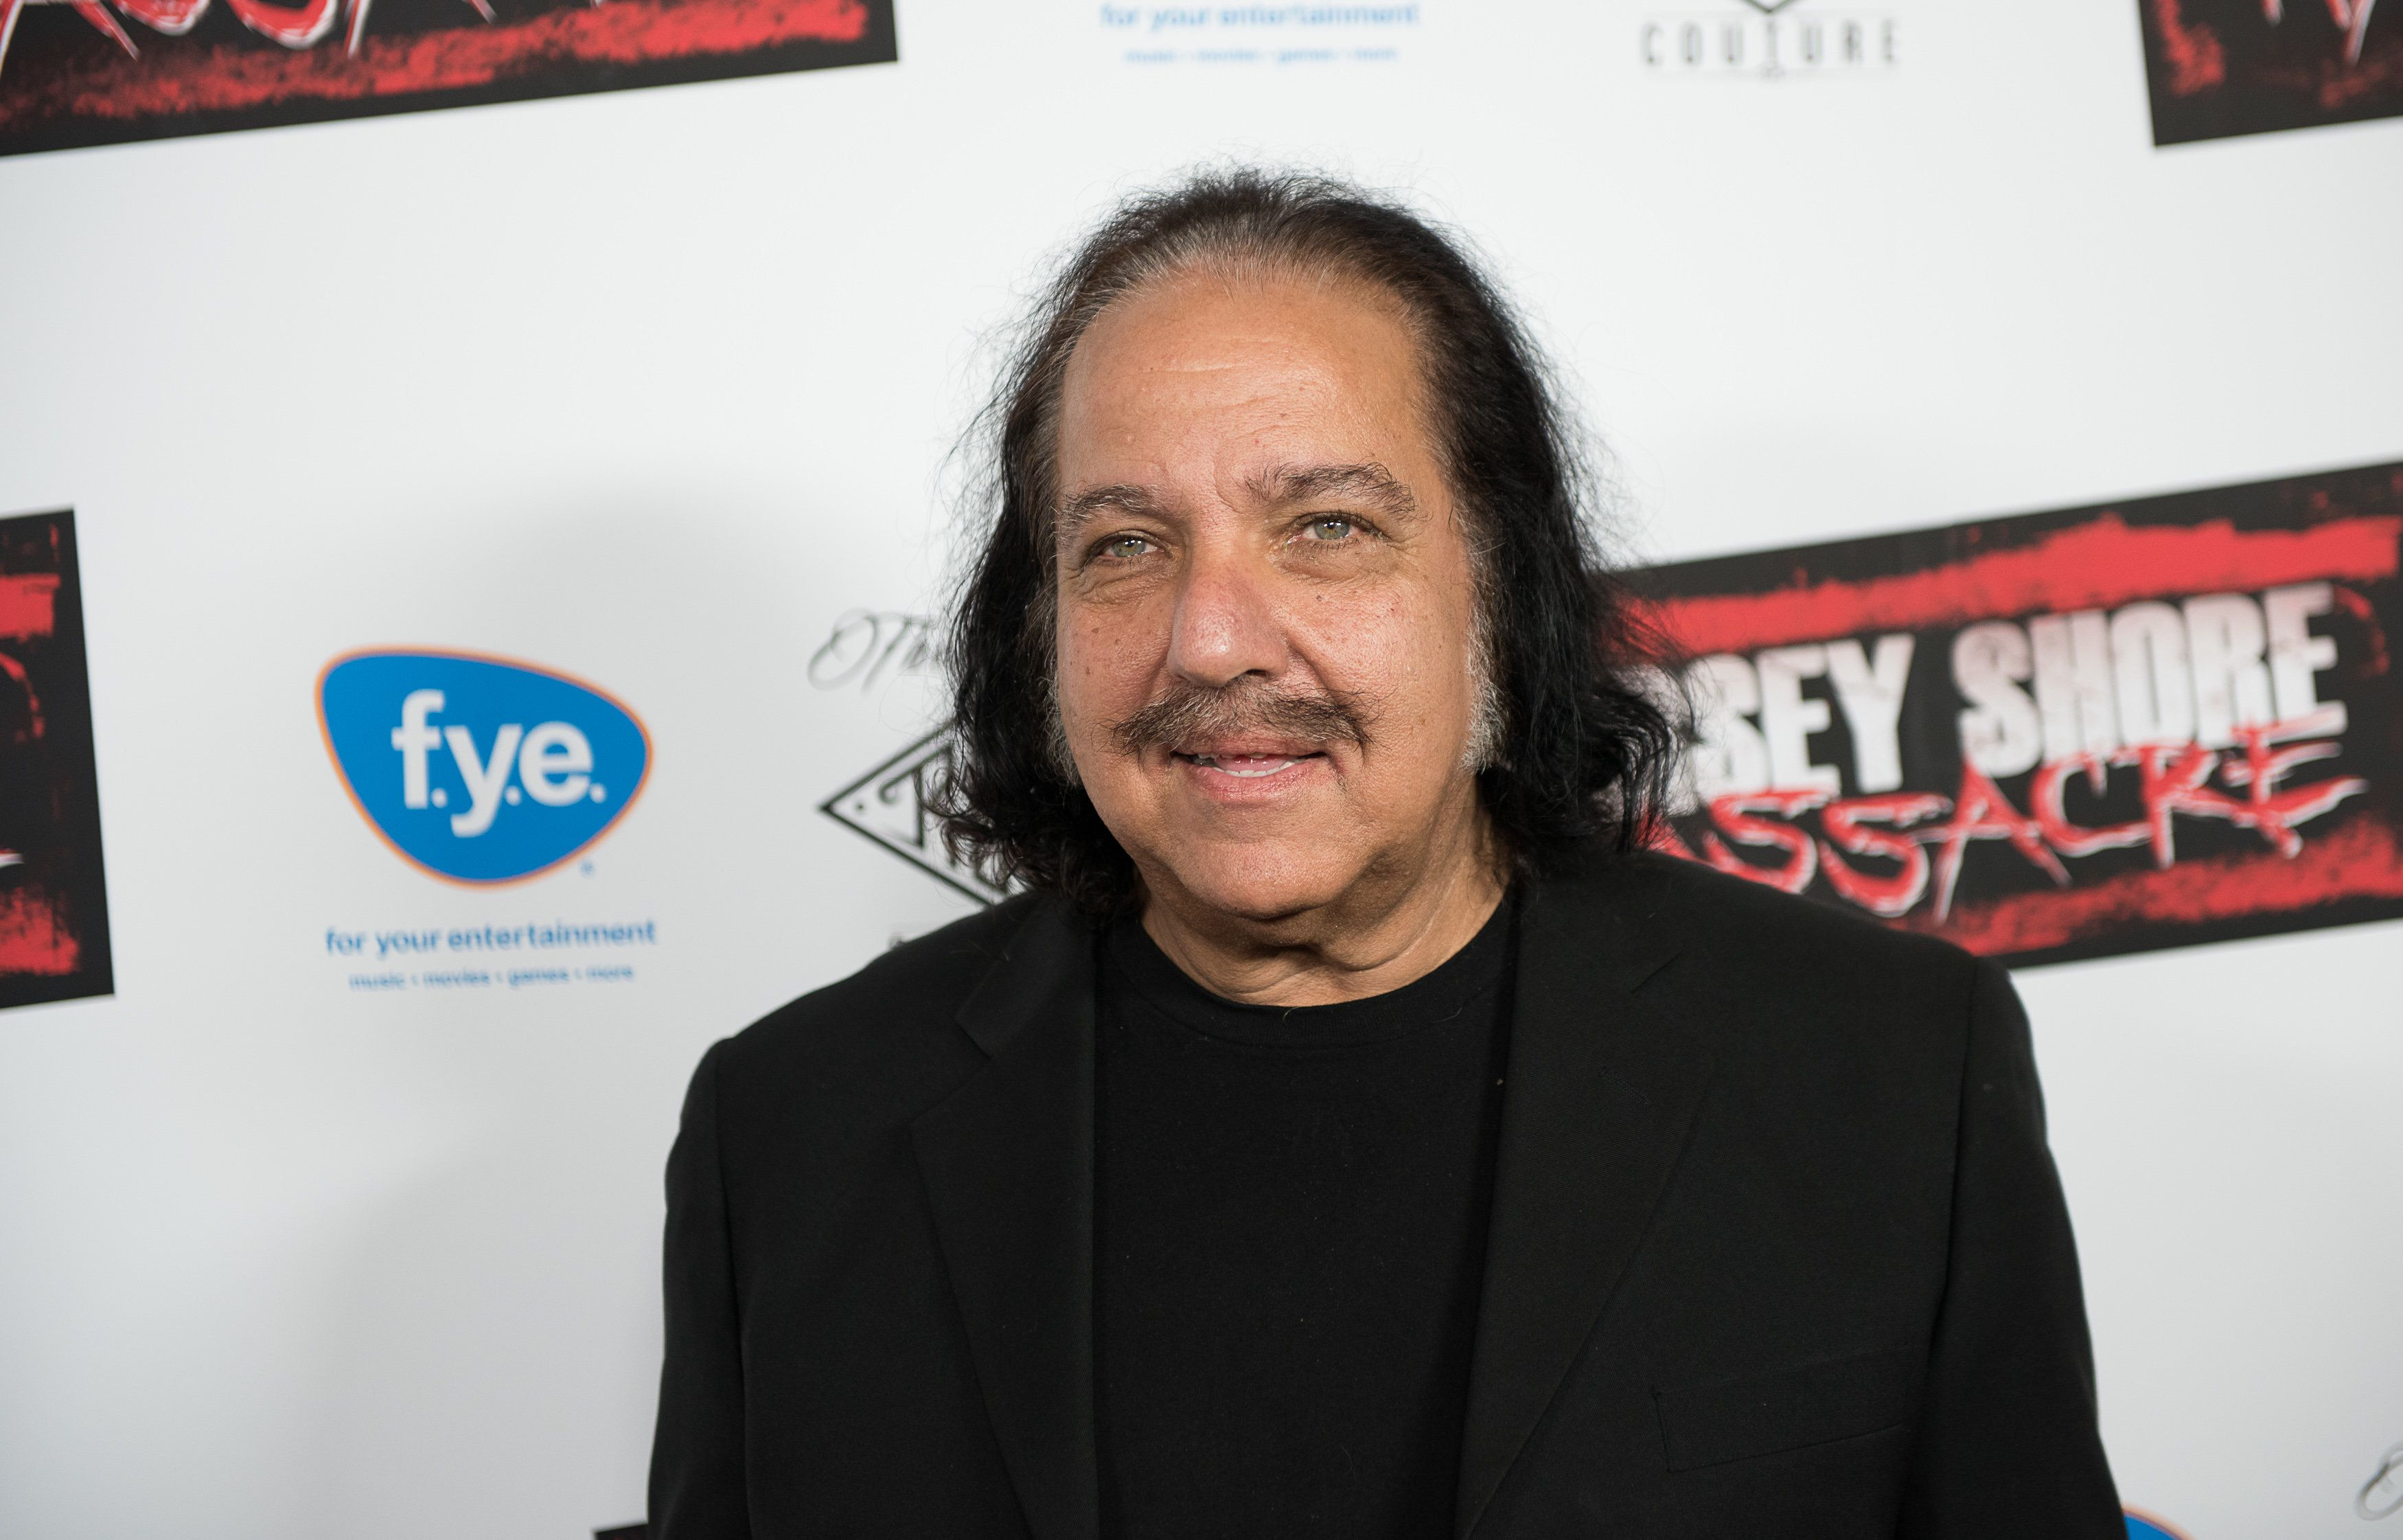 NEW YORK, NY - AUGUST 19:  Adult film actor Ron Jeremy attends the 'Jersey Shore Massacre' New York Premiere at AMC Lincoln Square Theater on August 19, 2014 in New York City.  (Photo by Dave Kotinsky/Getty Images)